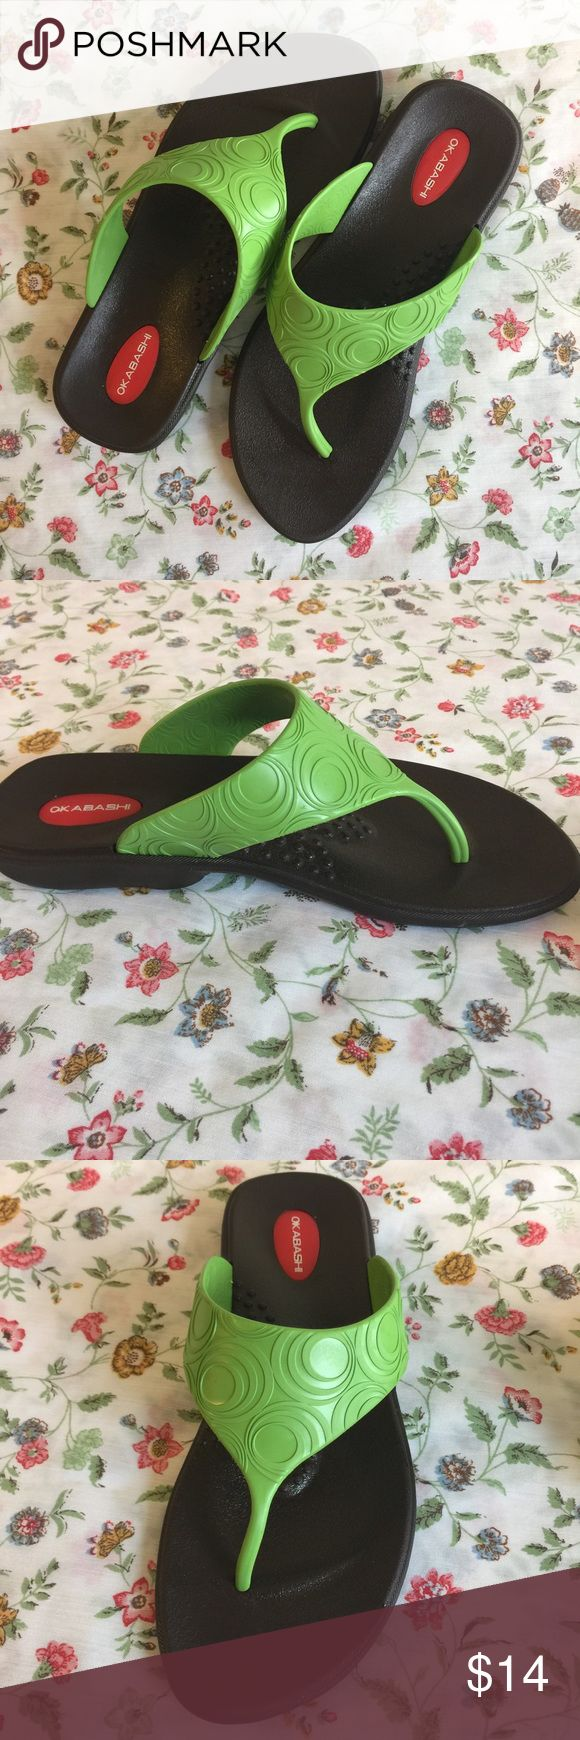 """Okabashi Women's Flip Flops Medium Green 7 8 Water Okabashi women's rubber flip flops, green thong with brown soles. Size medium, which I believe is about a 7-8. Toe to heel, the shoe is 9.75"""". Excellent condition. Very little signs of wear, extremely clean. I personally scrubbed and sanitized these with oxi clean. Very light wear evident to toe beds and soles, overall in great condition! These would be nice water shoes and good for water sports since they have a grippy sole. Made in the…"""